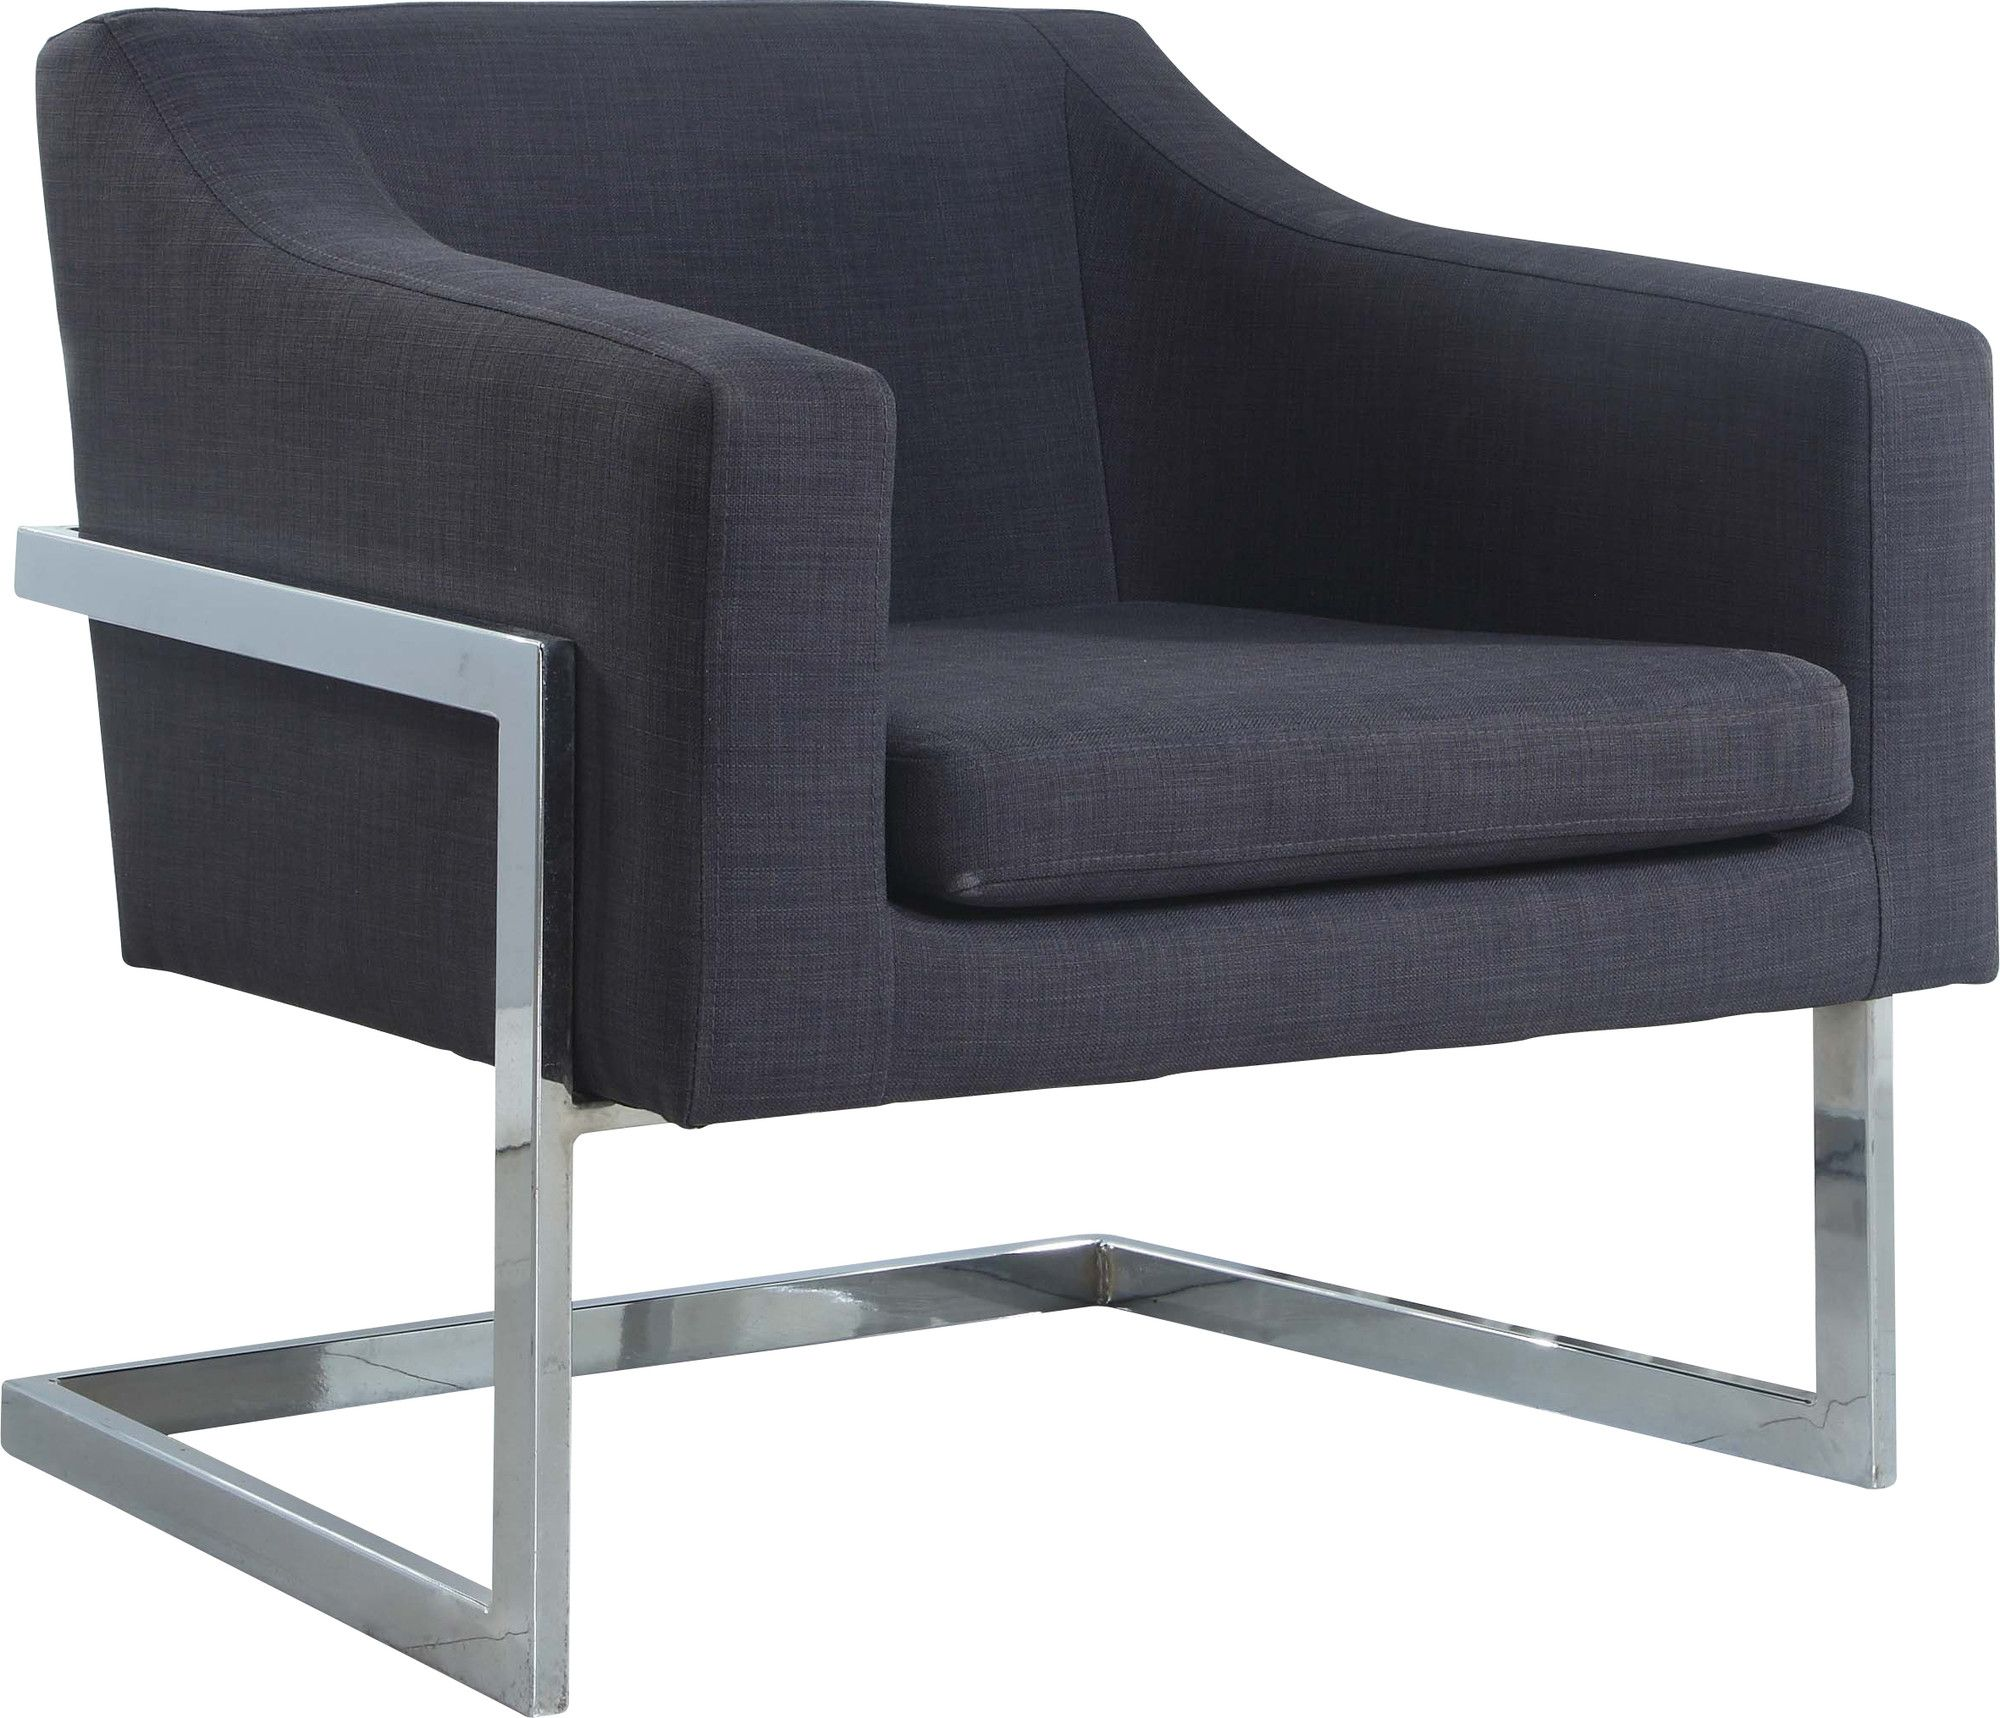 Admirable Modern Club Chair With Chrome Legs Products Modern Dailytribune Chair Design For Home Dailytribuneorg